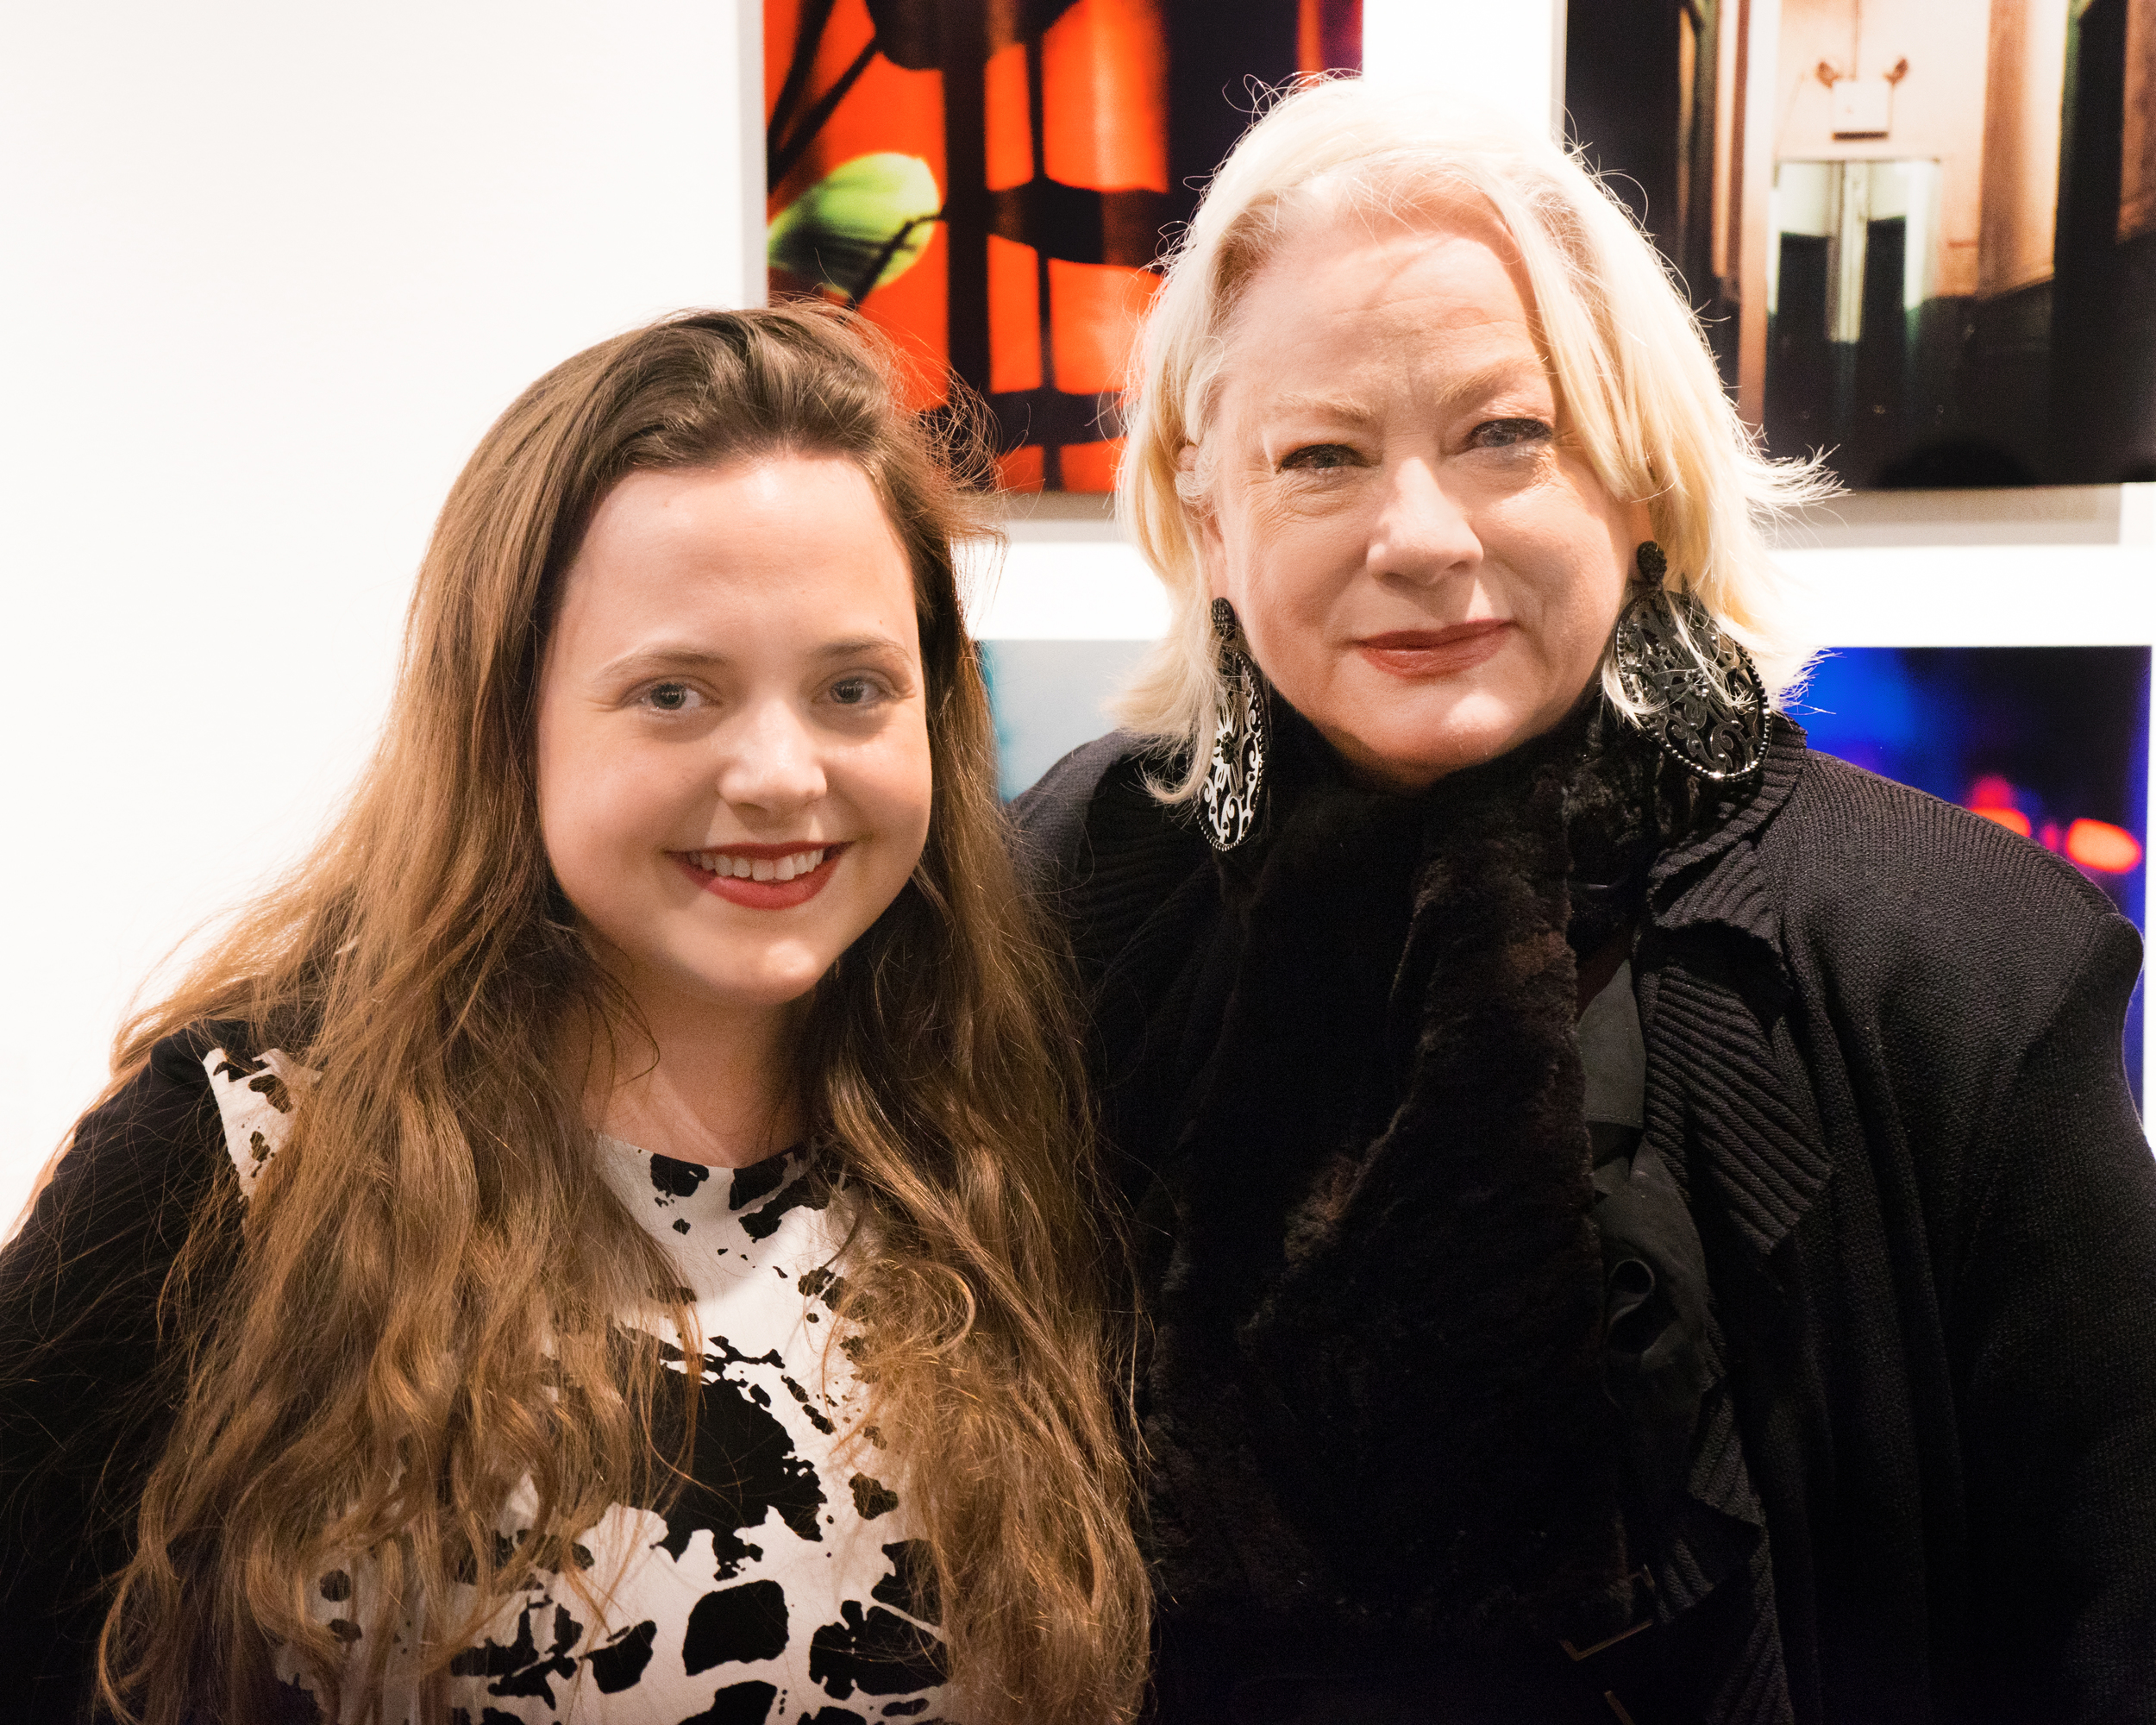 With my mentor, Ellen Carey, at the exhibition opening.